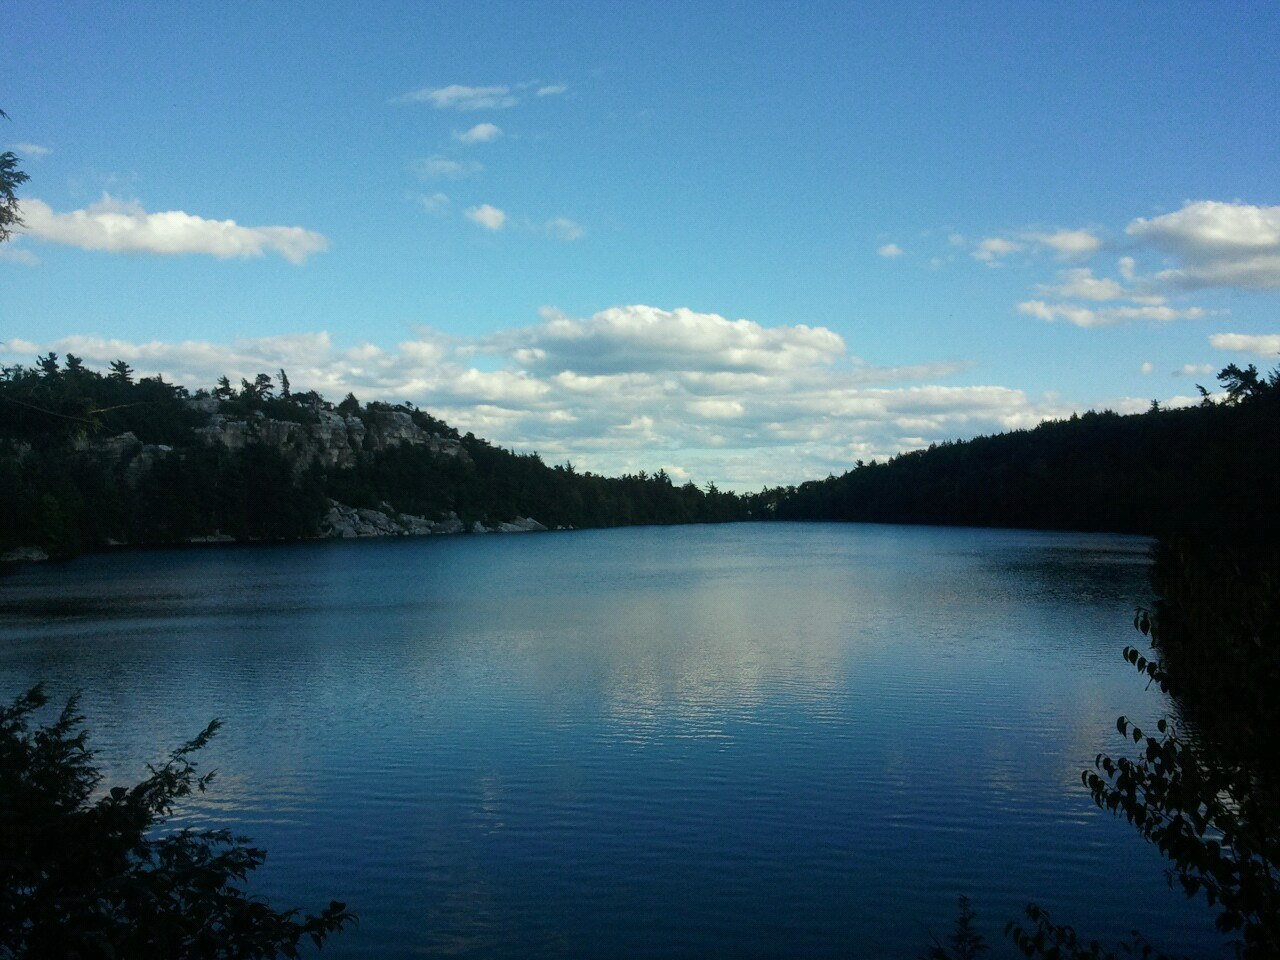 Lake Minnewaska. Photo by Shira Tamir.